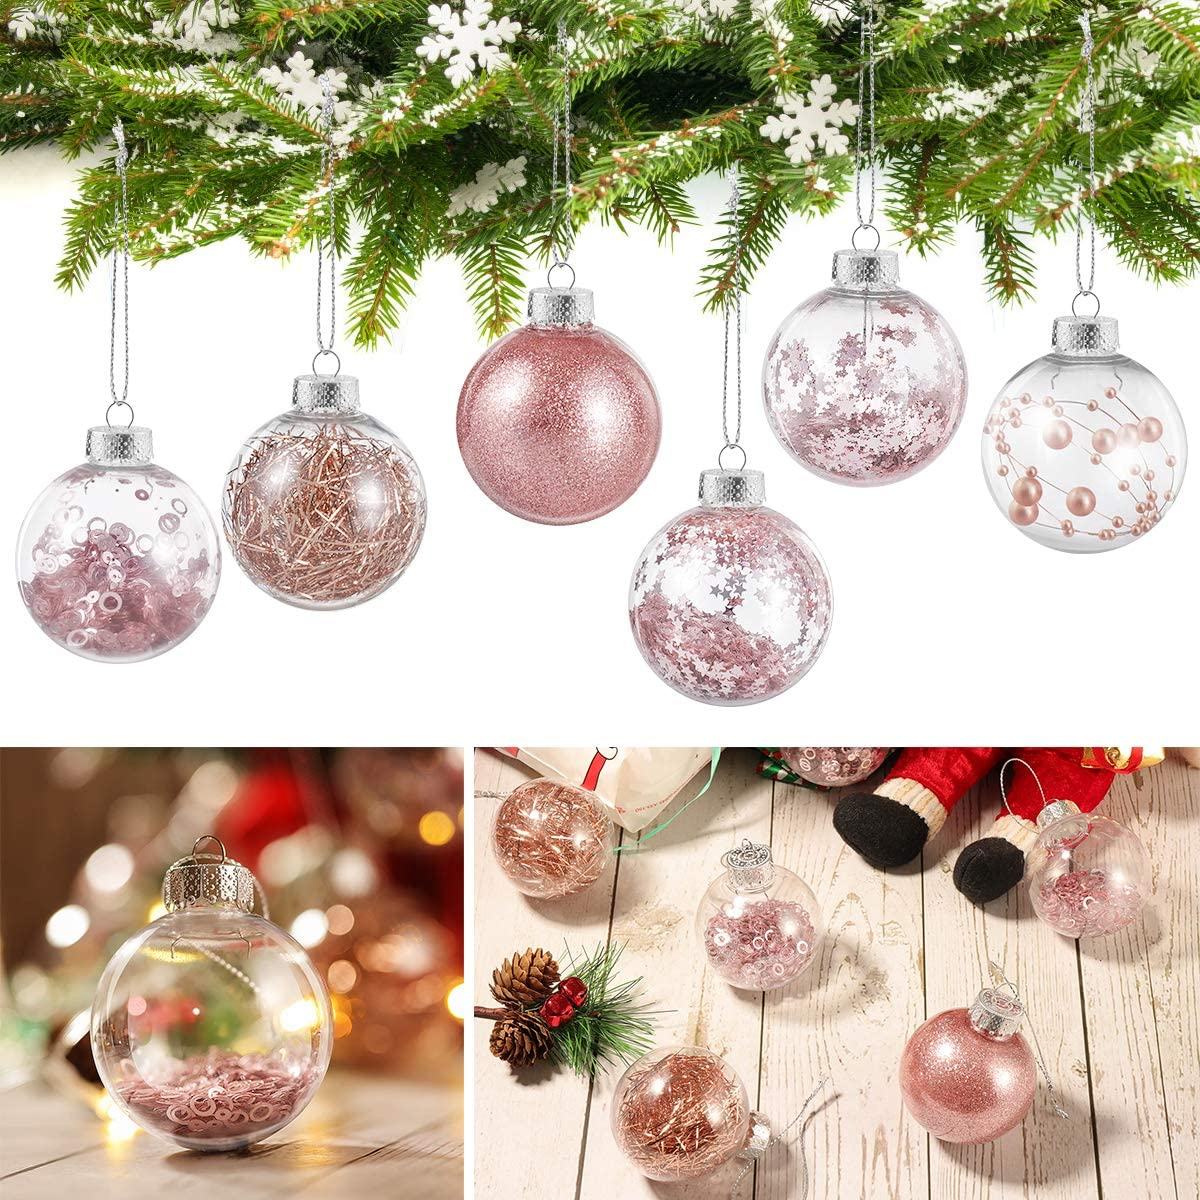 Christmas Ball Ornaments, Assorted Pendant Shatterproof Ball Ornament Set for Christmas Tree Decorations 36 Pack